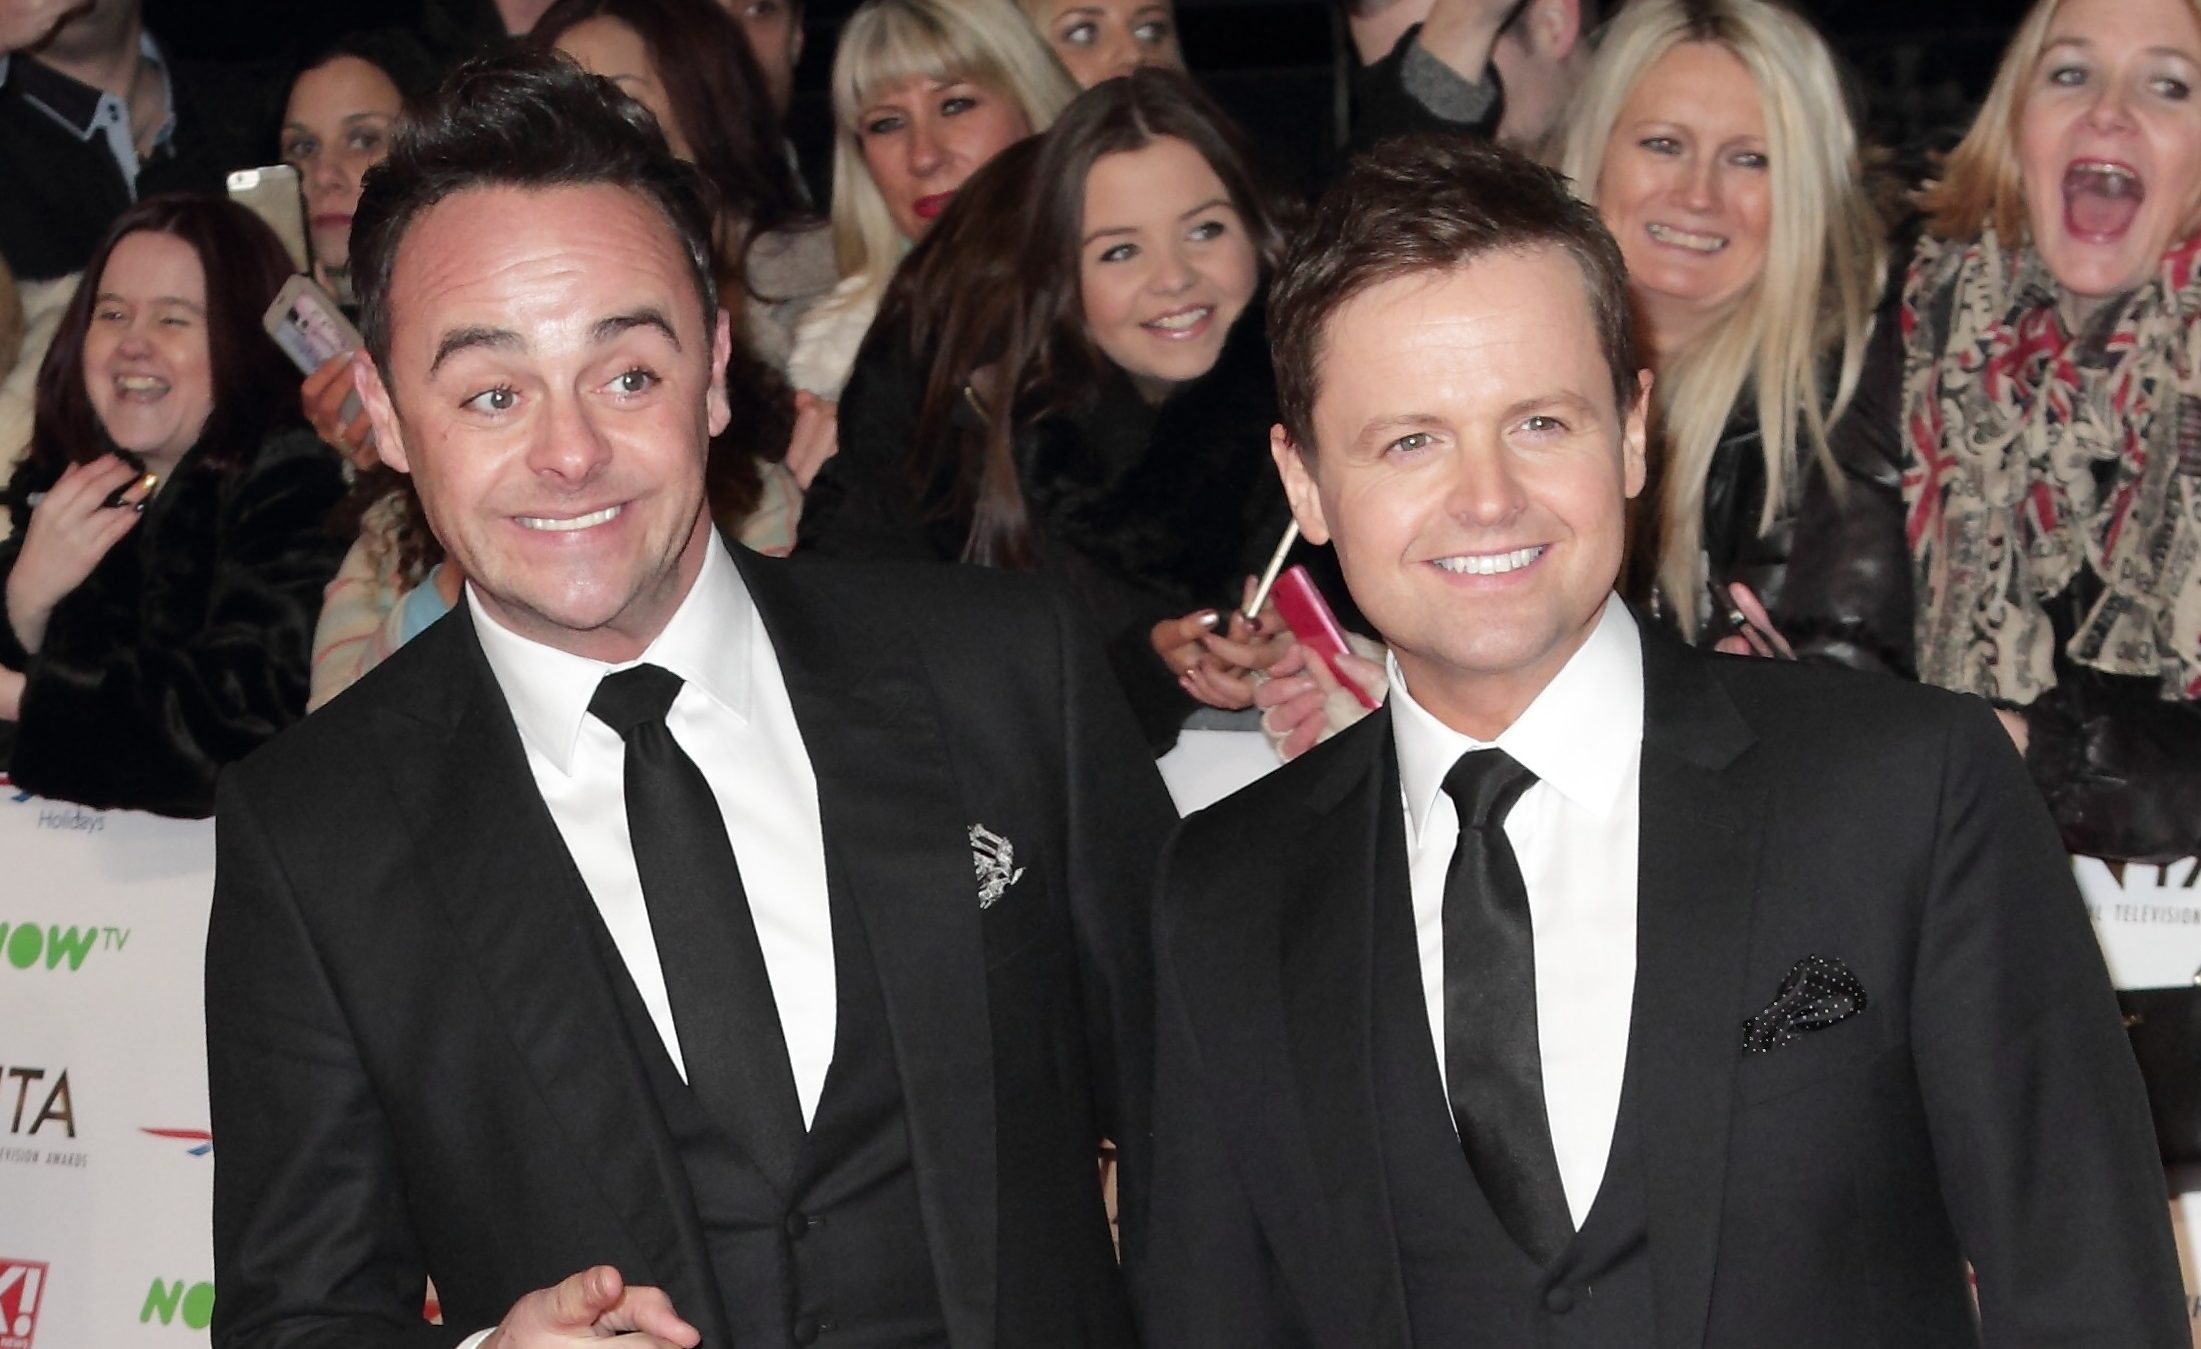 Ant McPartlin is returning to his telly work tomorrow